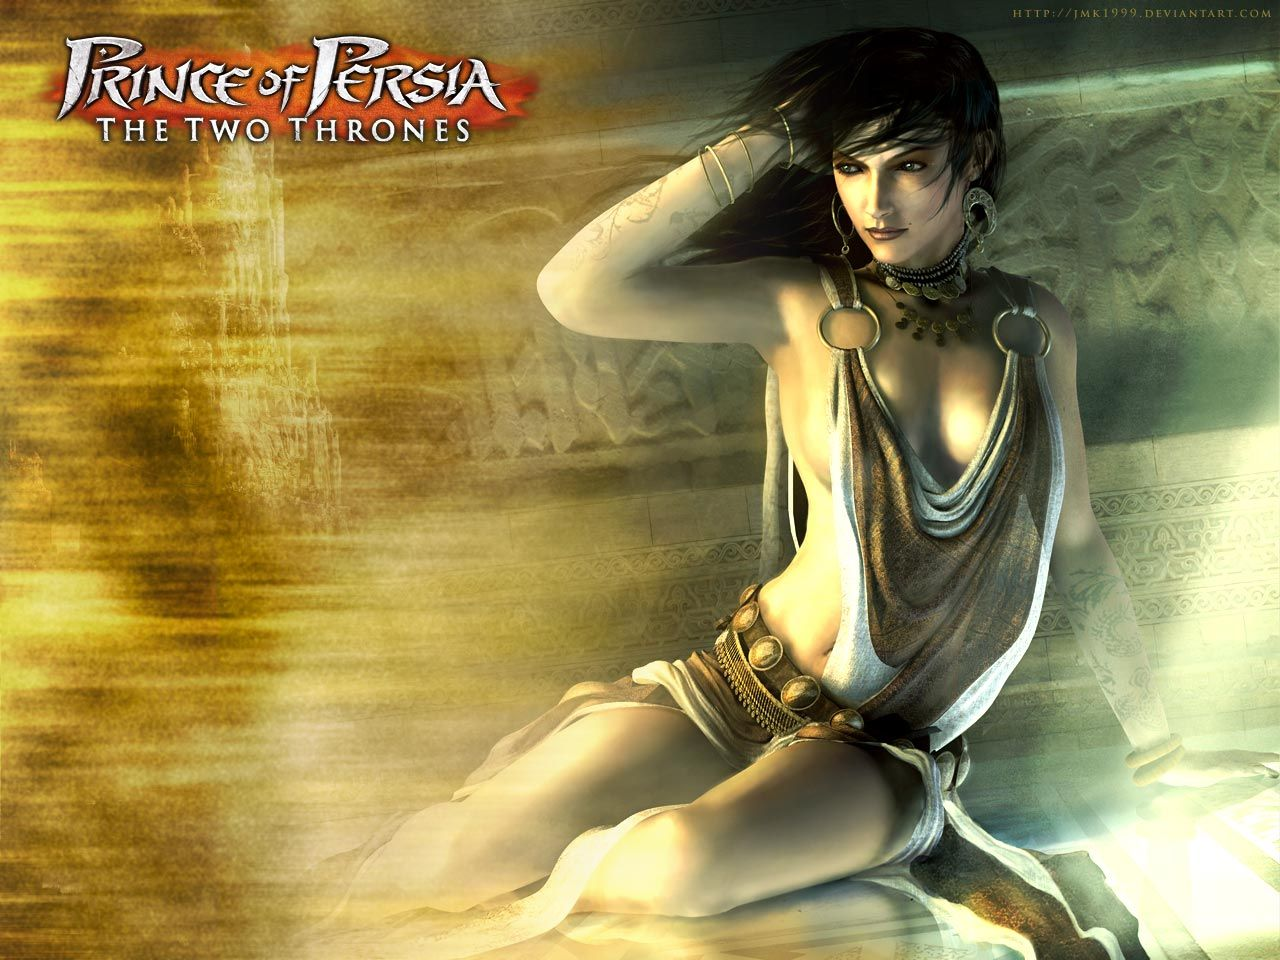 6.jpg - Prince of Persia: The Two Thrones